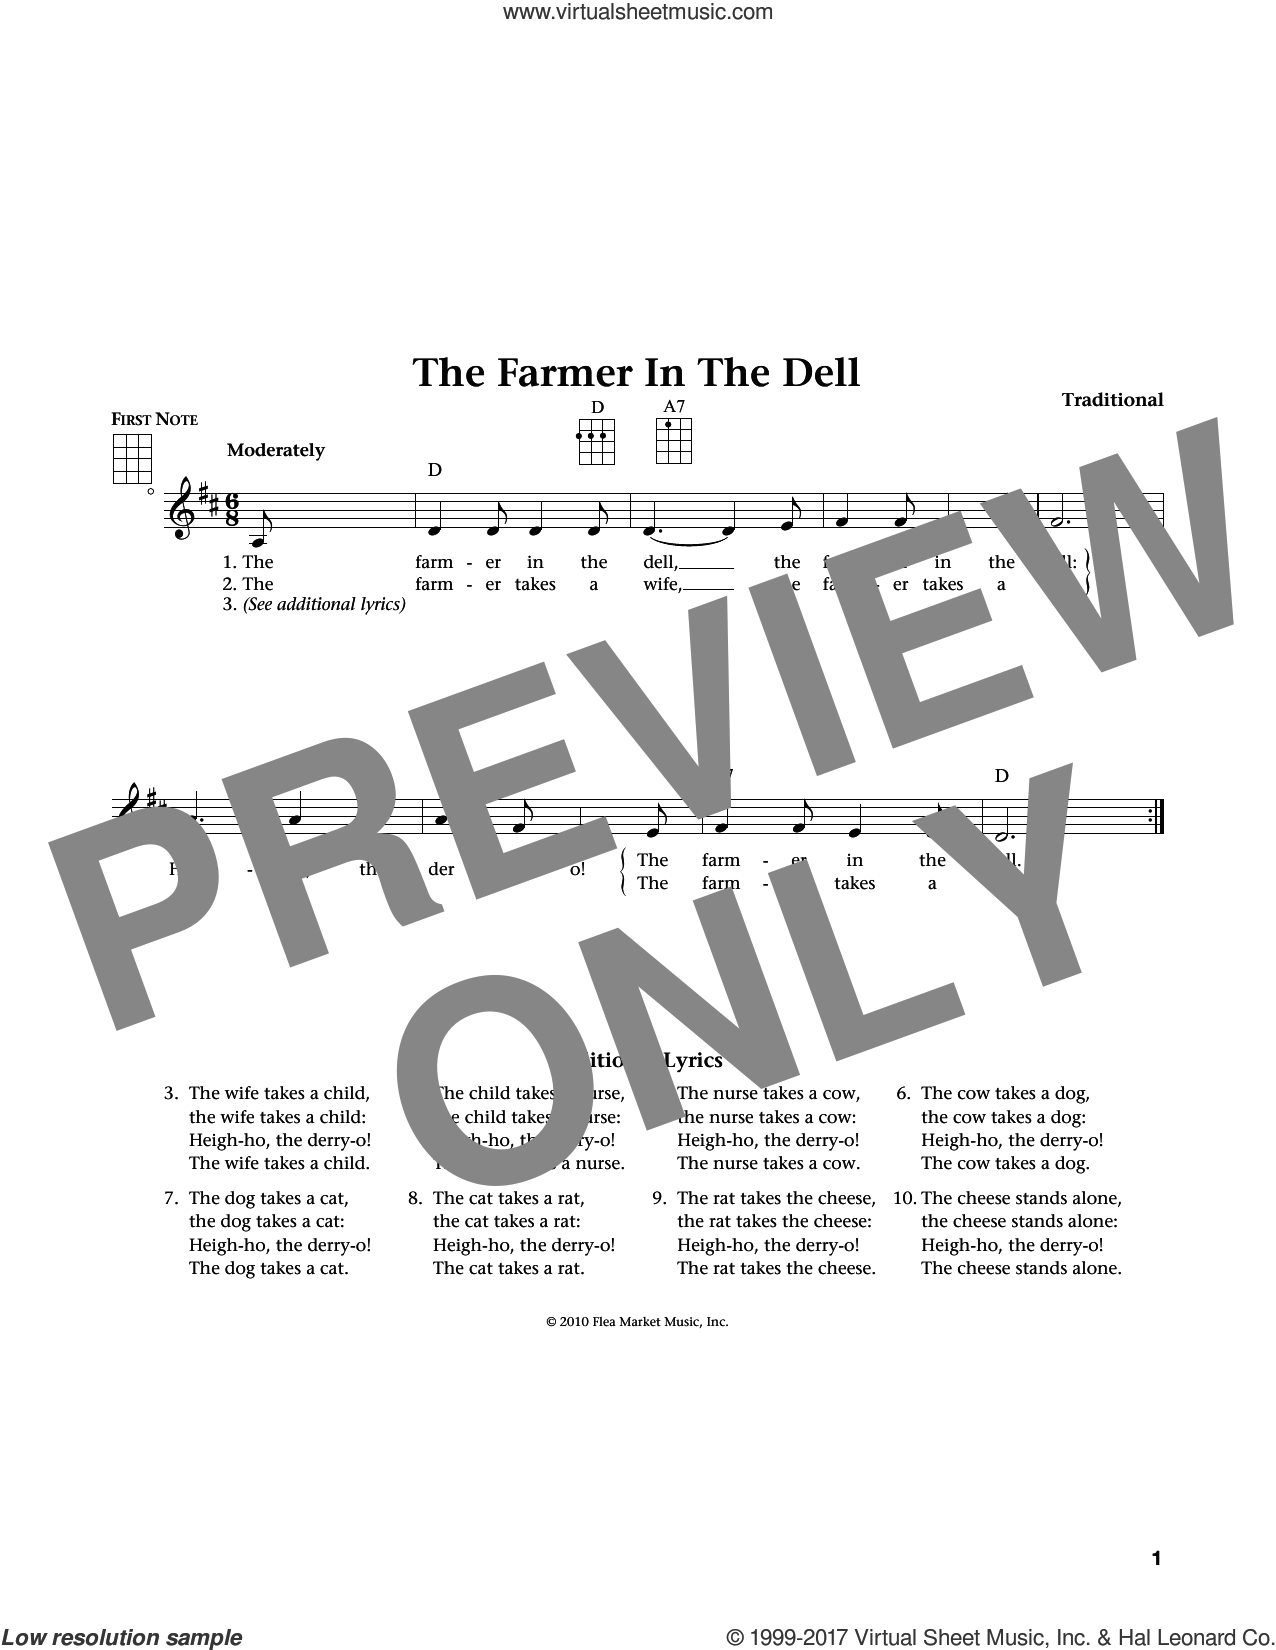 The Farmer In The Dell (from The Daily Ukulele) (arr. Liz and Jim Beloff) sheet music for ukulele , Jim Beloff and Liz Beloff, intermediate skill level